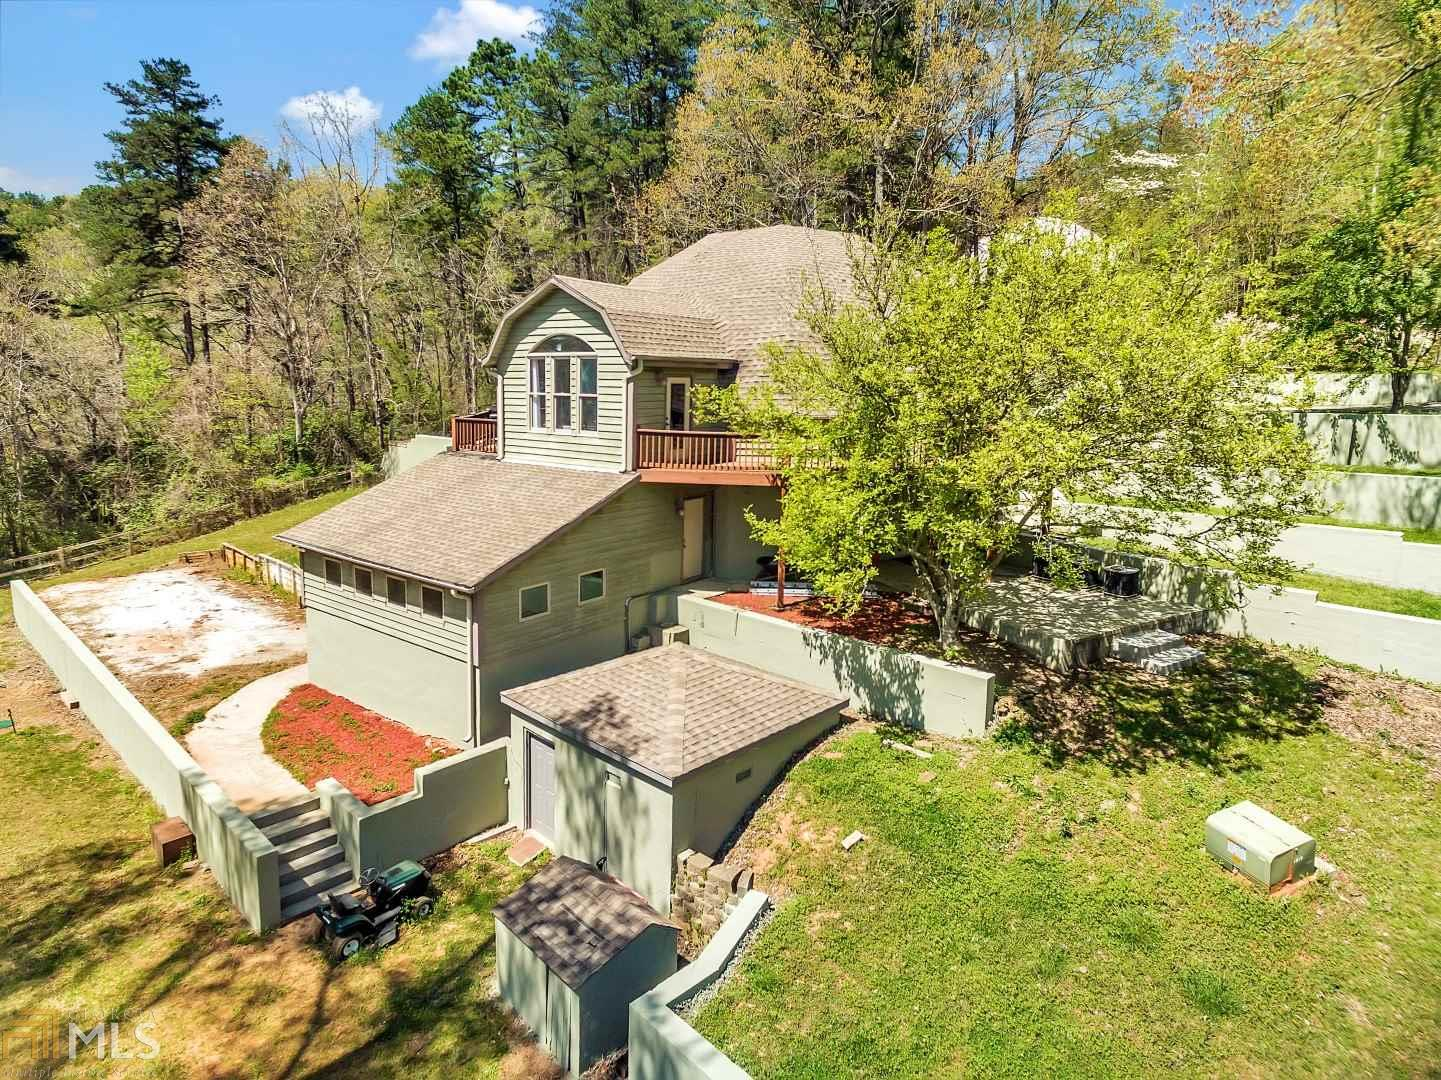 Real Estate Listing 89 Oasis Rd Lakemont Ga 374 000